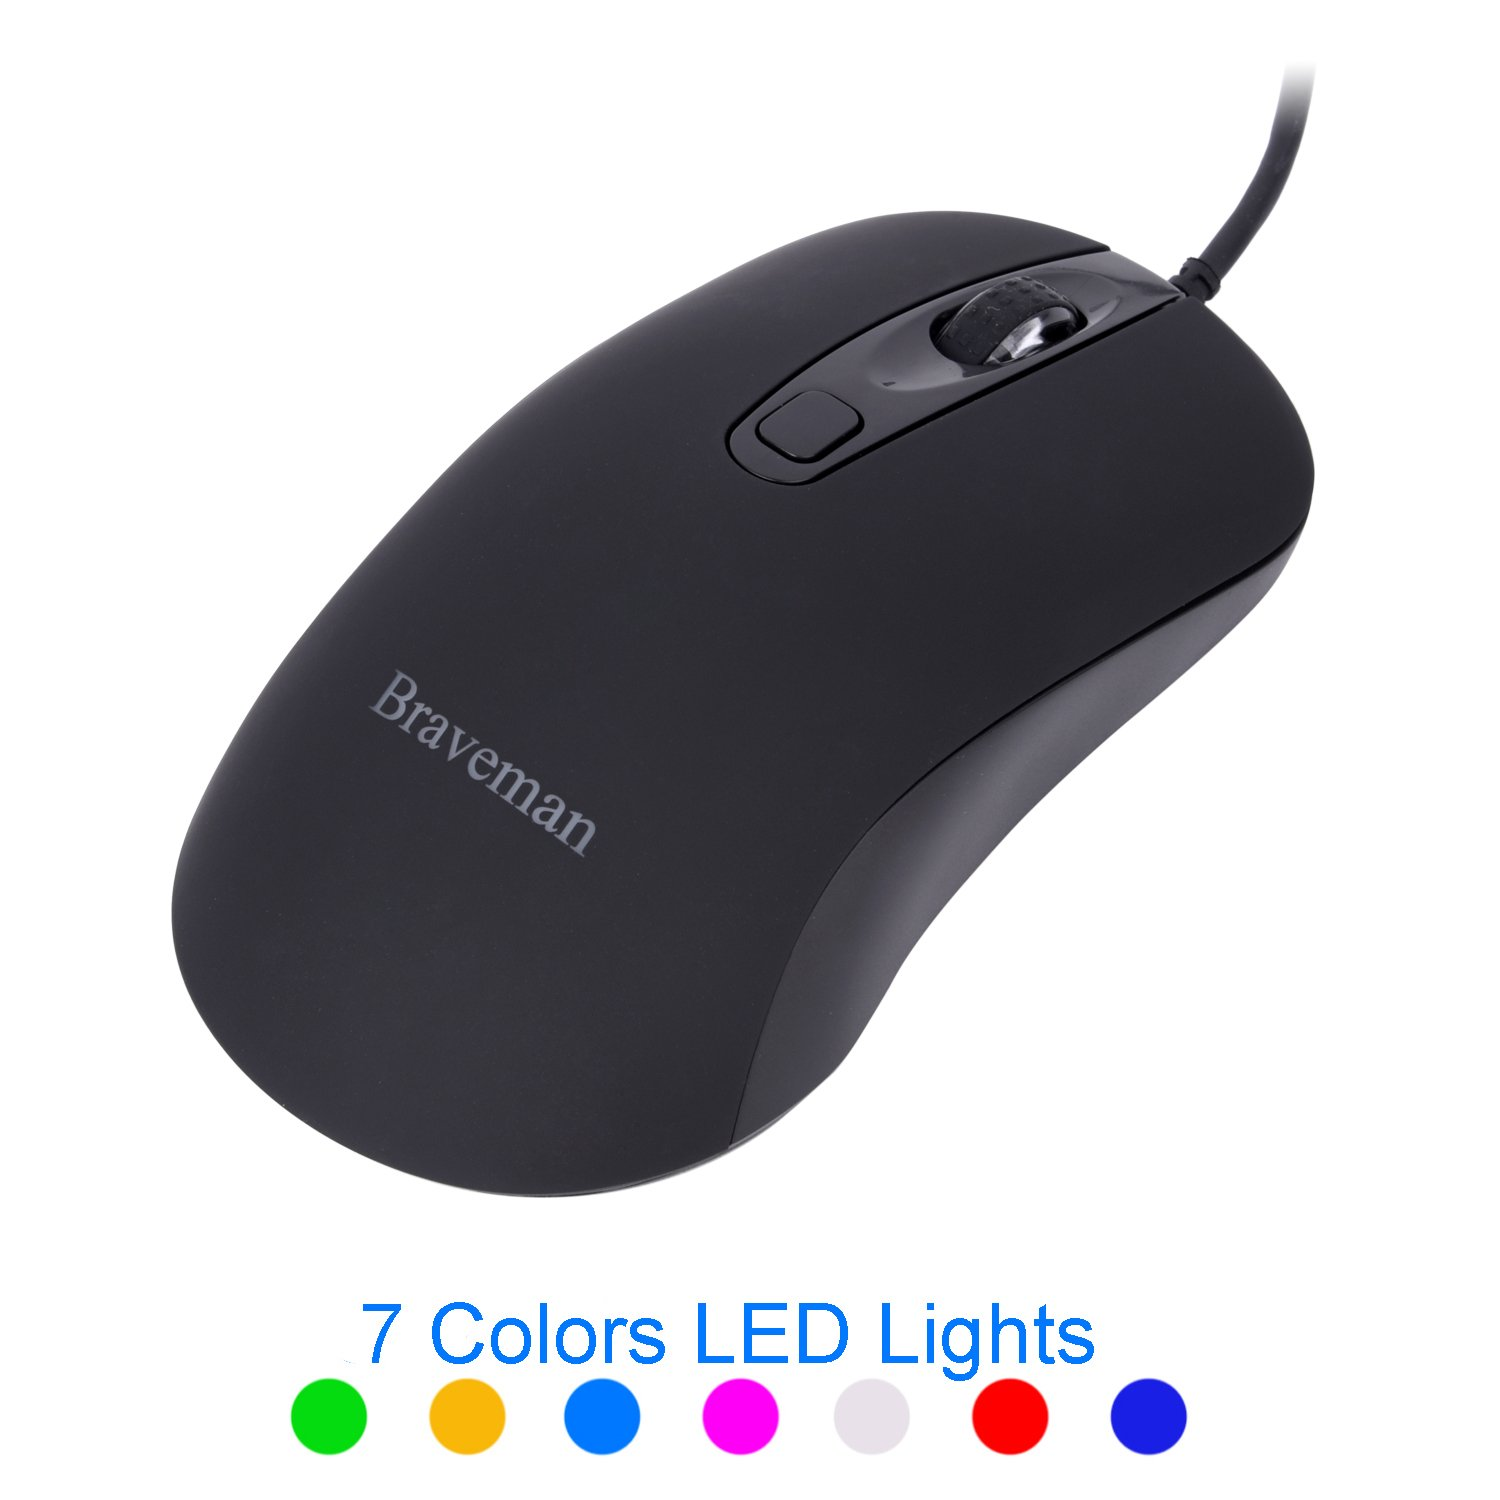 Braveman Wired Optical Mouse, 7 Adjustable DPI Level 3500 DPI Highest, 3-Button Mice with 7-Color LED Backlit for PC Laptop Computer for Office or Gaming (Black)